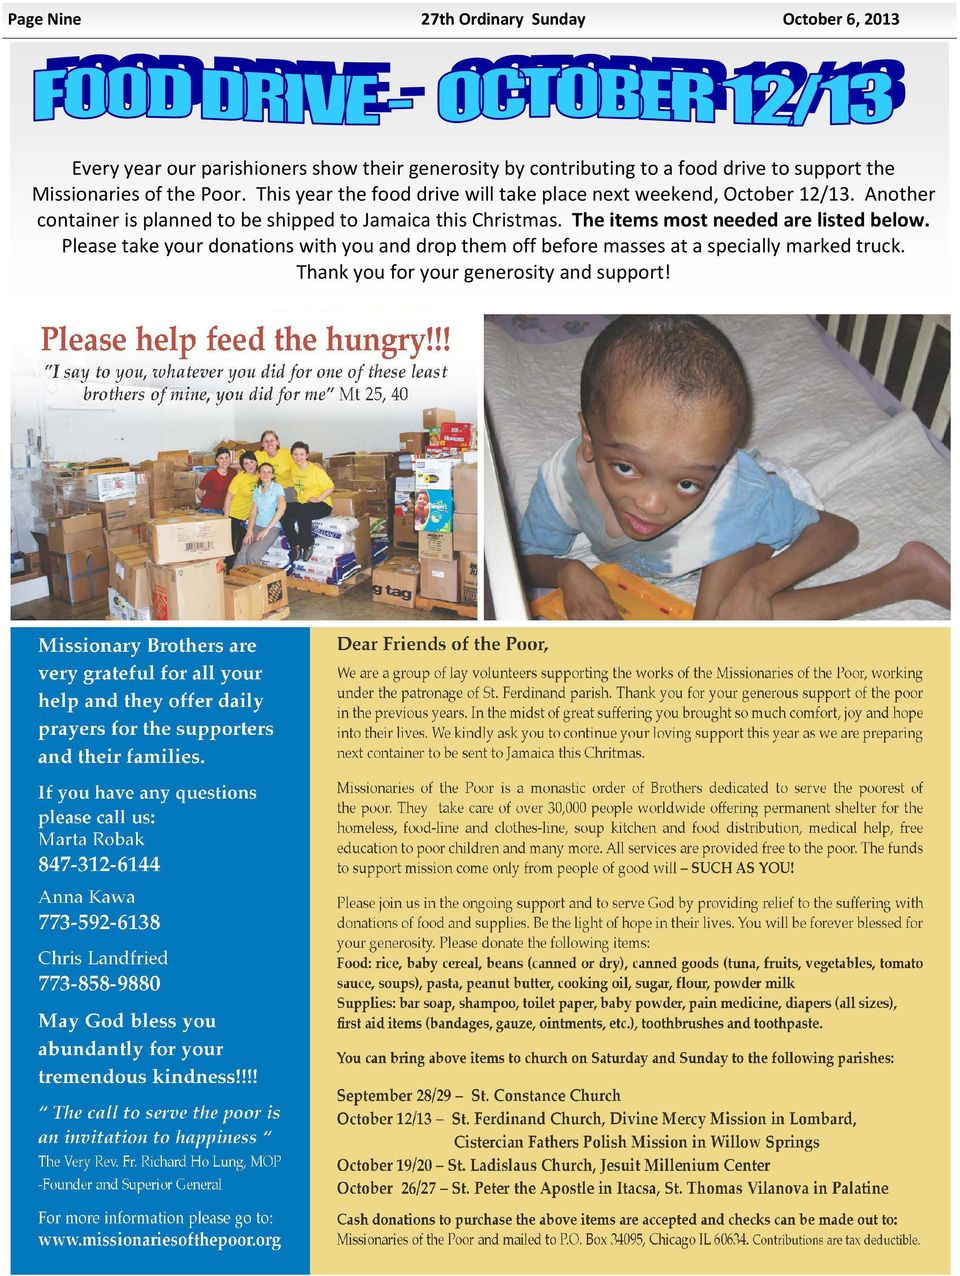 Thisyearthefooddrivewilltakeplacenextweekend,October12/13.